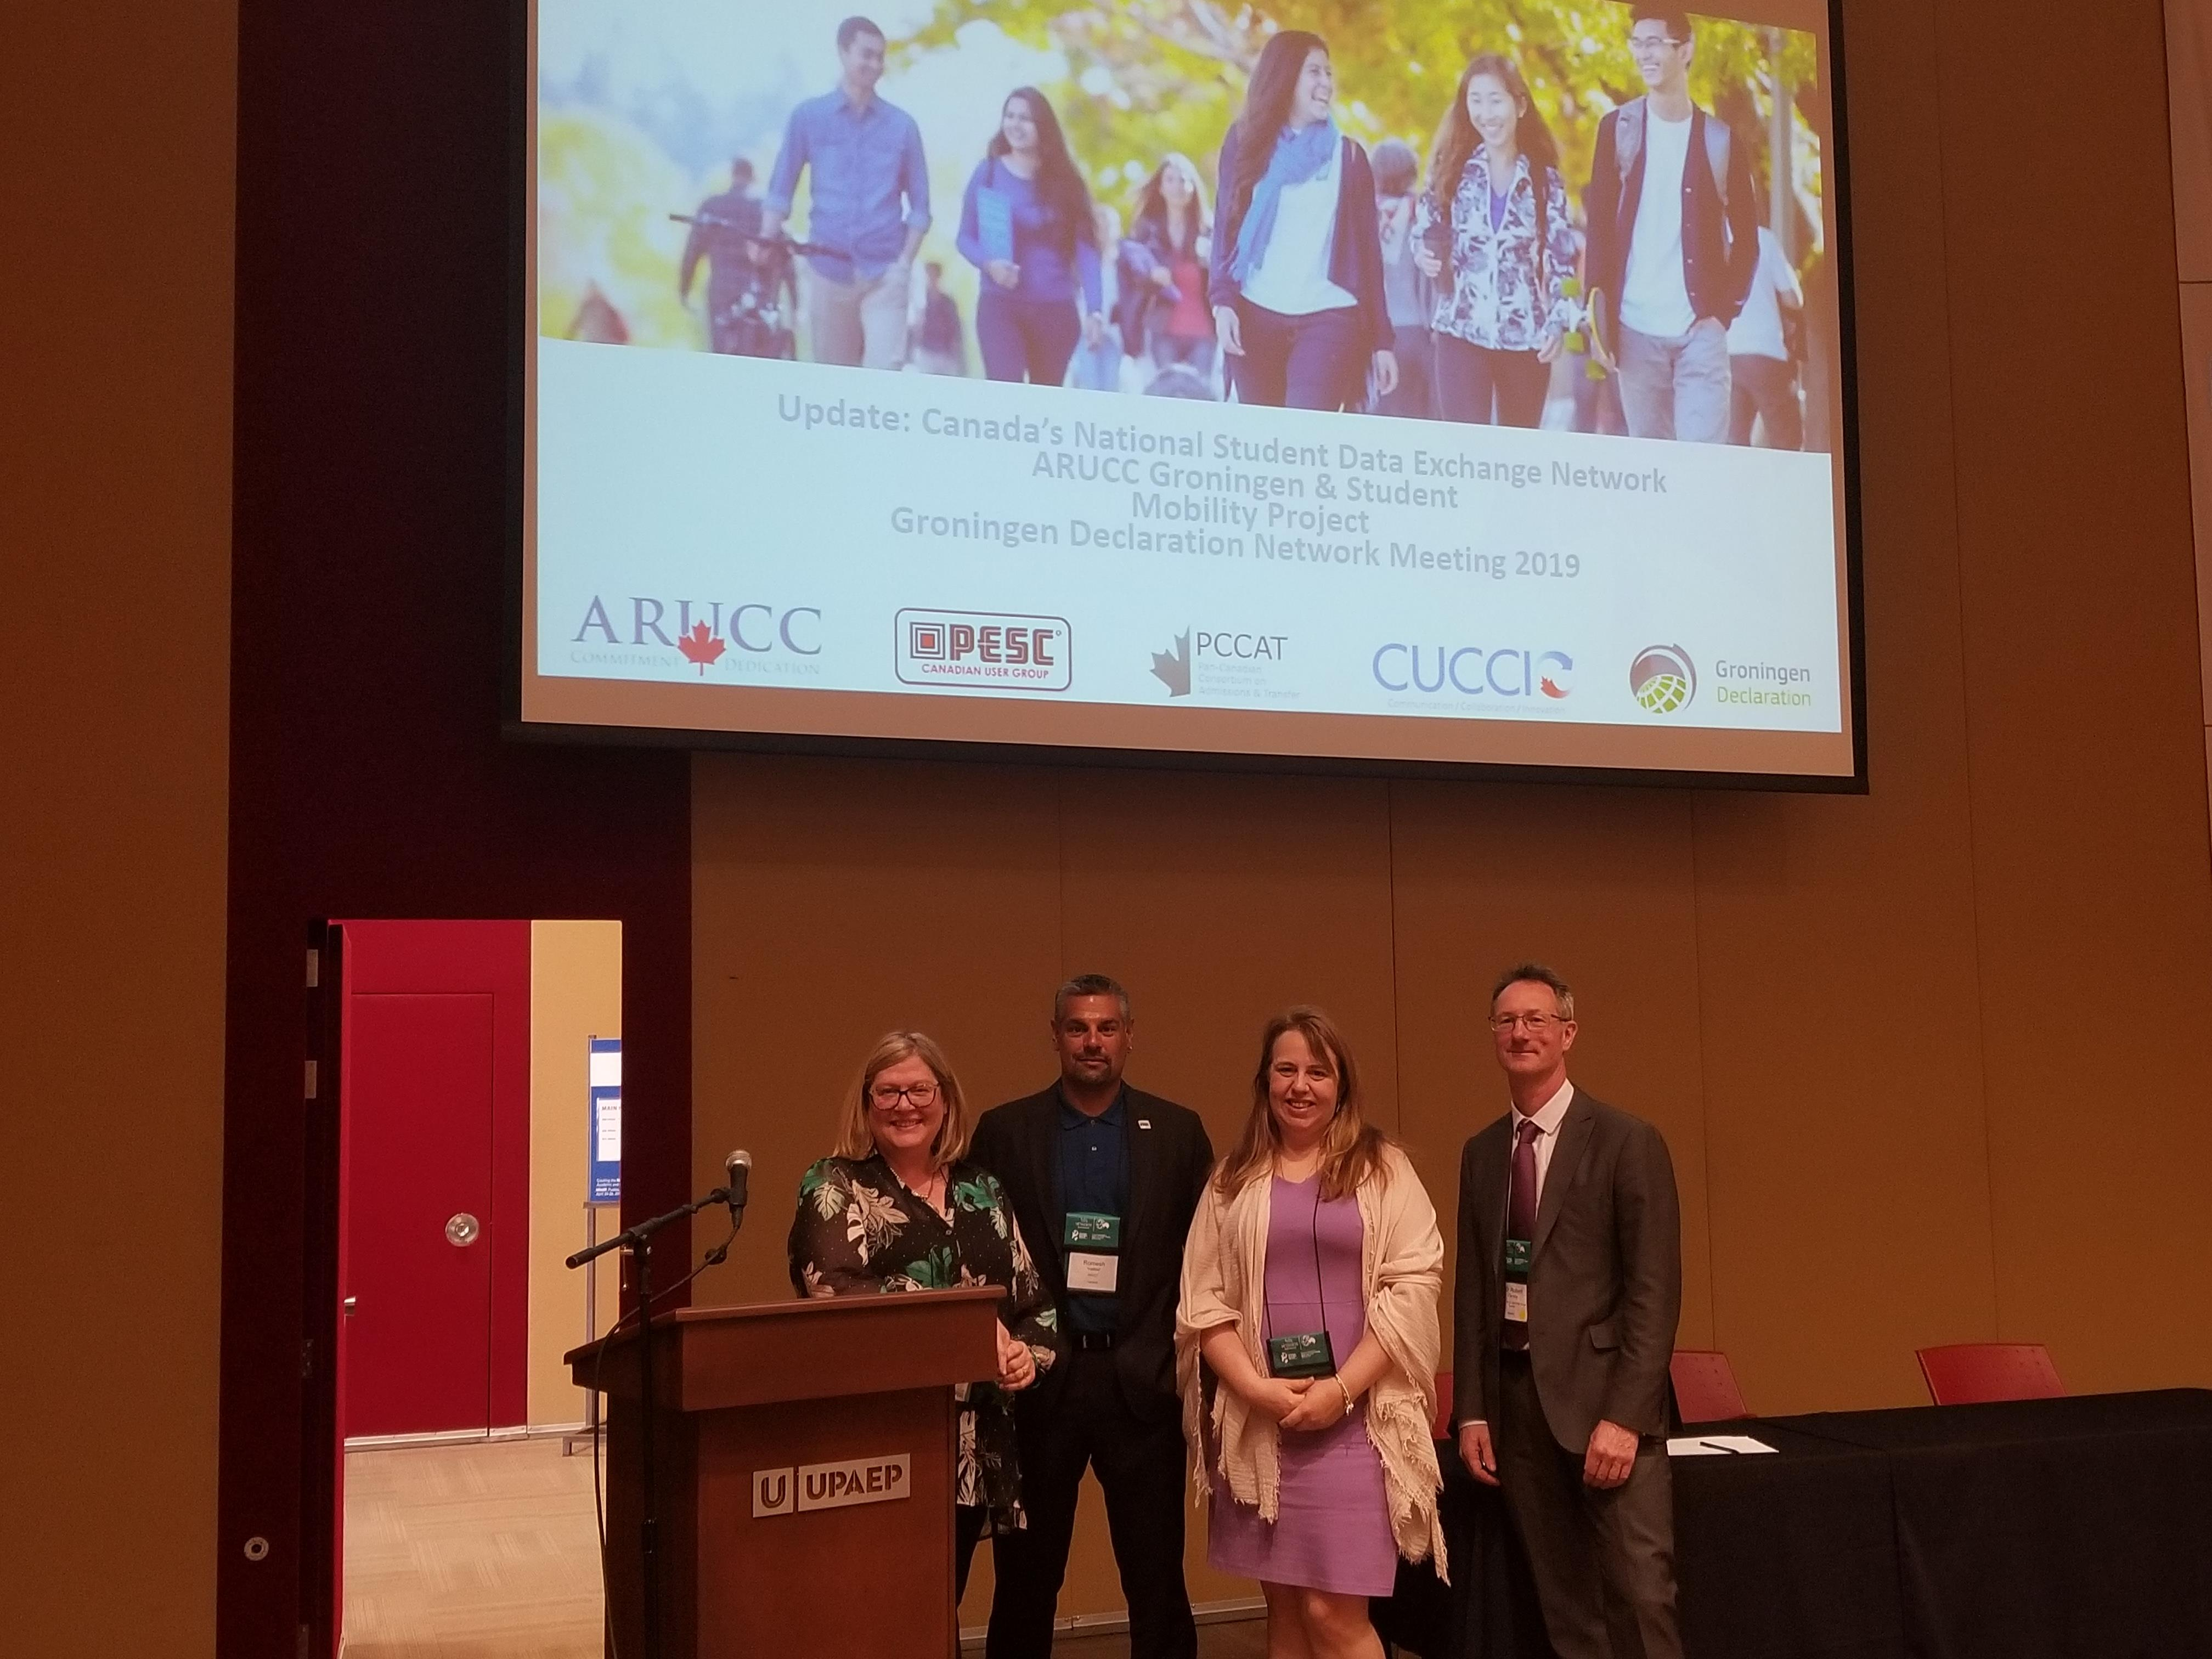 GDN 2019 Session presenters 2019 (L-R): Charmaine Hack, Romesh Vadivel, Julie Green, Rob Fleming